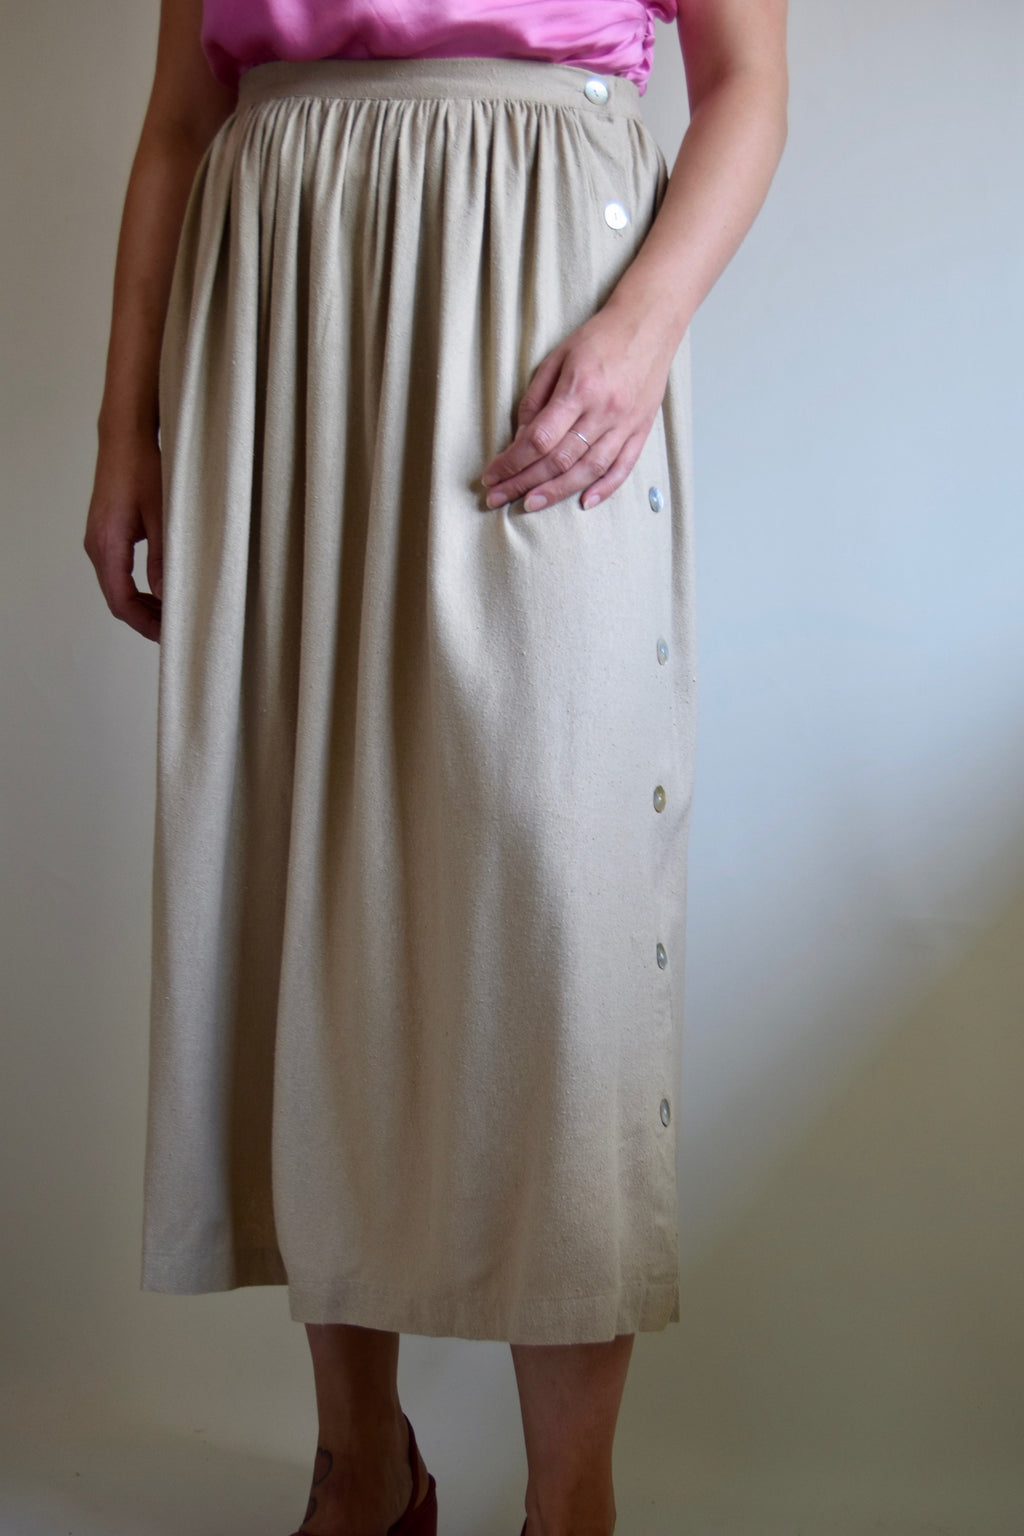 Cappuccino Raw Silk Skirt FREE SHIPPING TO THE U.S.